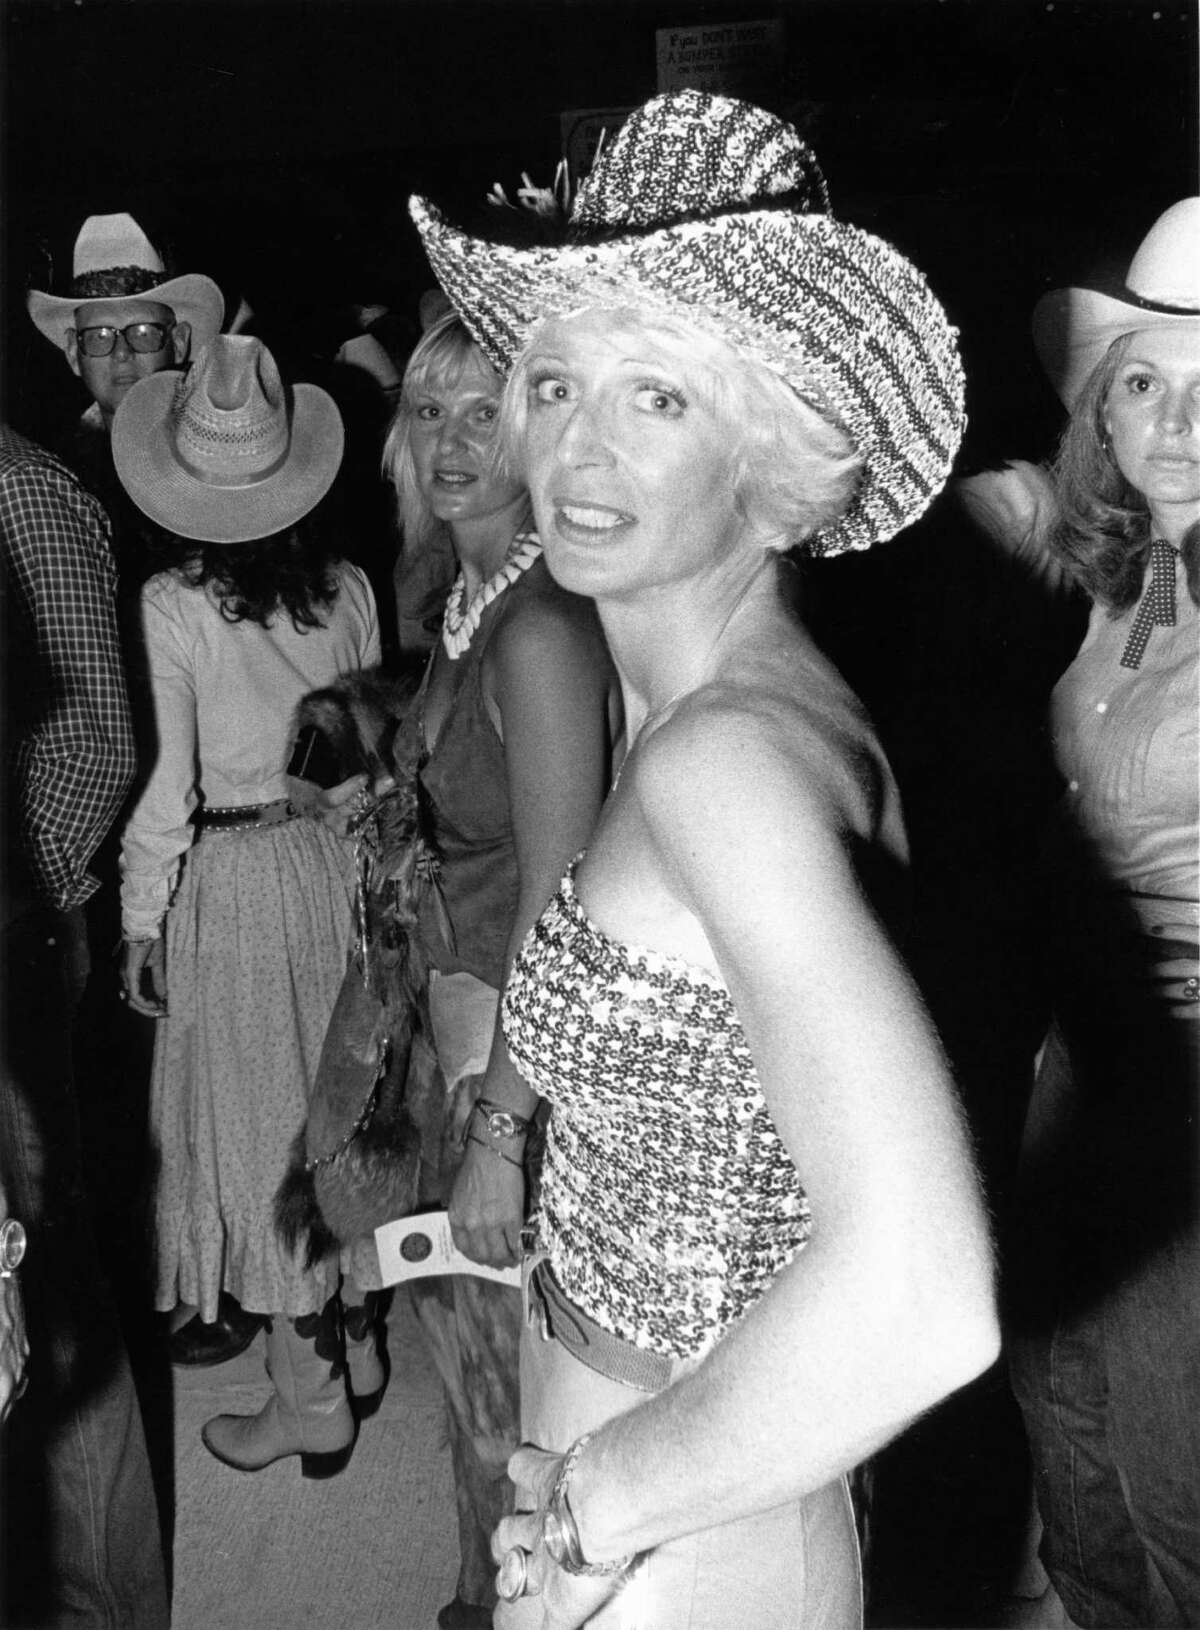 """06/05/1980 - Sequined cowgirl at Houston movie premiere party for """"Urban Cowboy"""" at Gilley's club."""